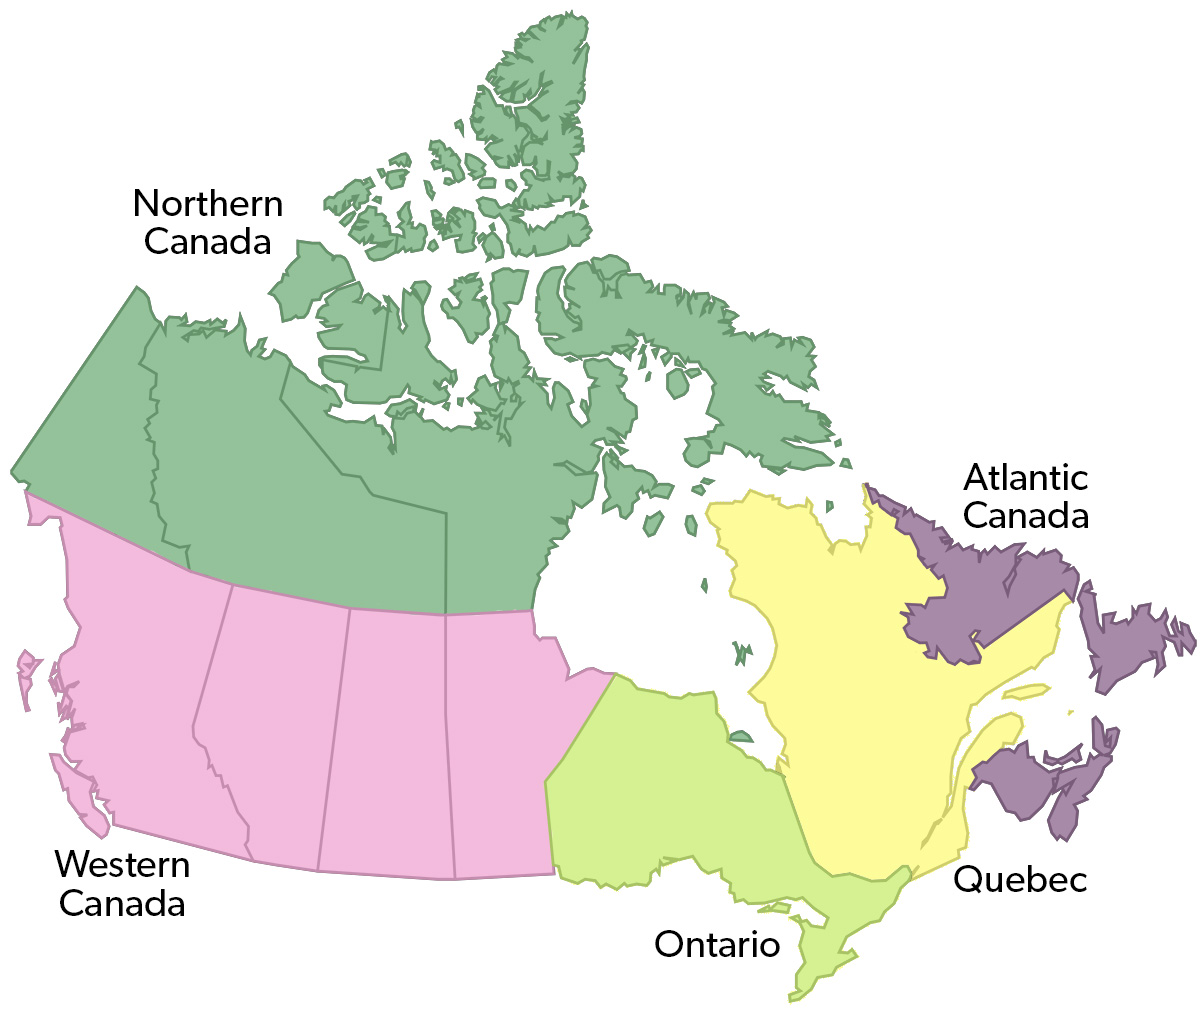 Regional Map Of Canada.Regional Economics In Canada The Canadian Encyclopedia